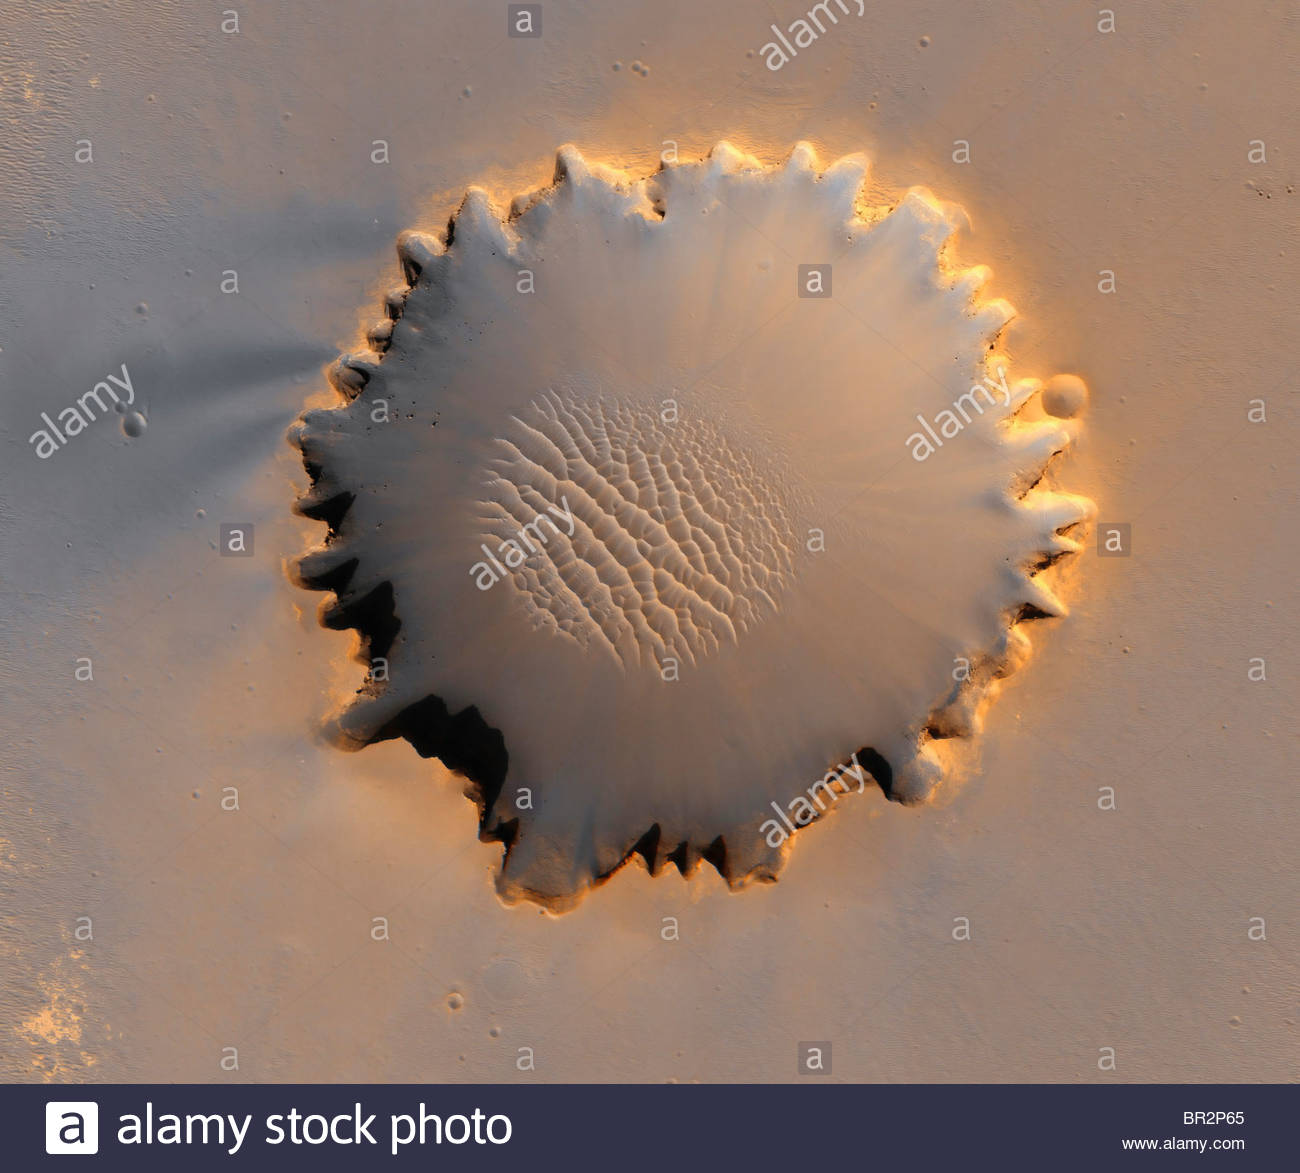 Mars Planet Stock Photos & Mars Planet Stock Images.